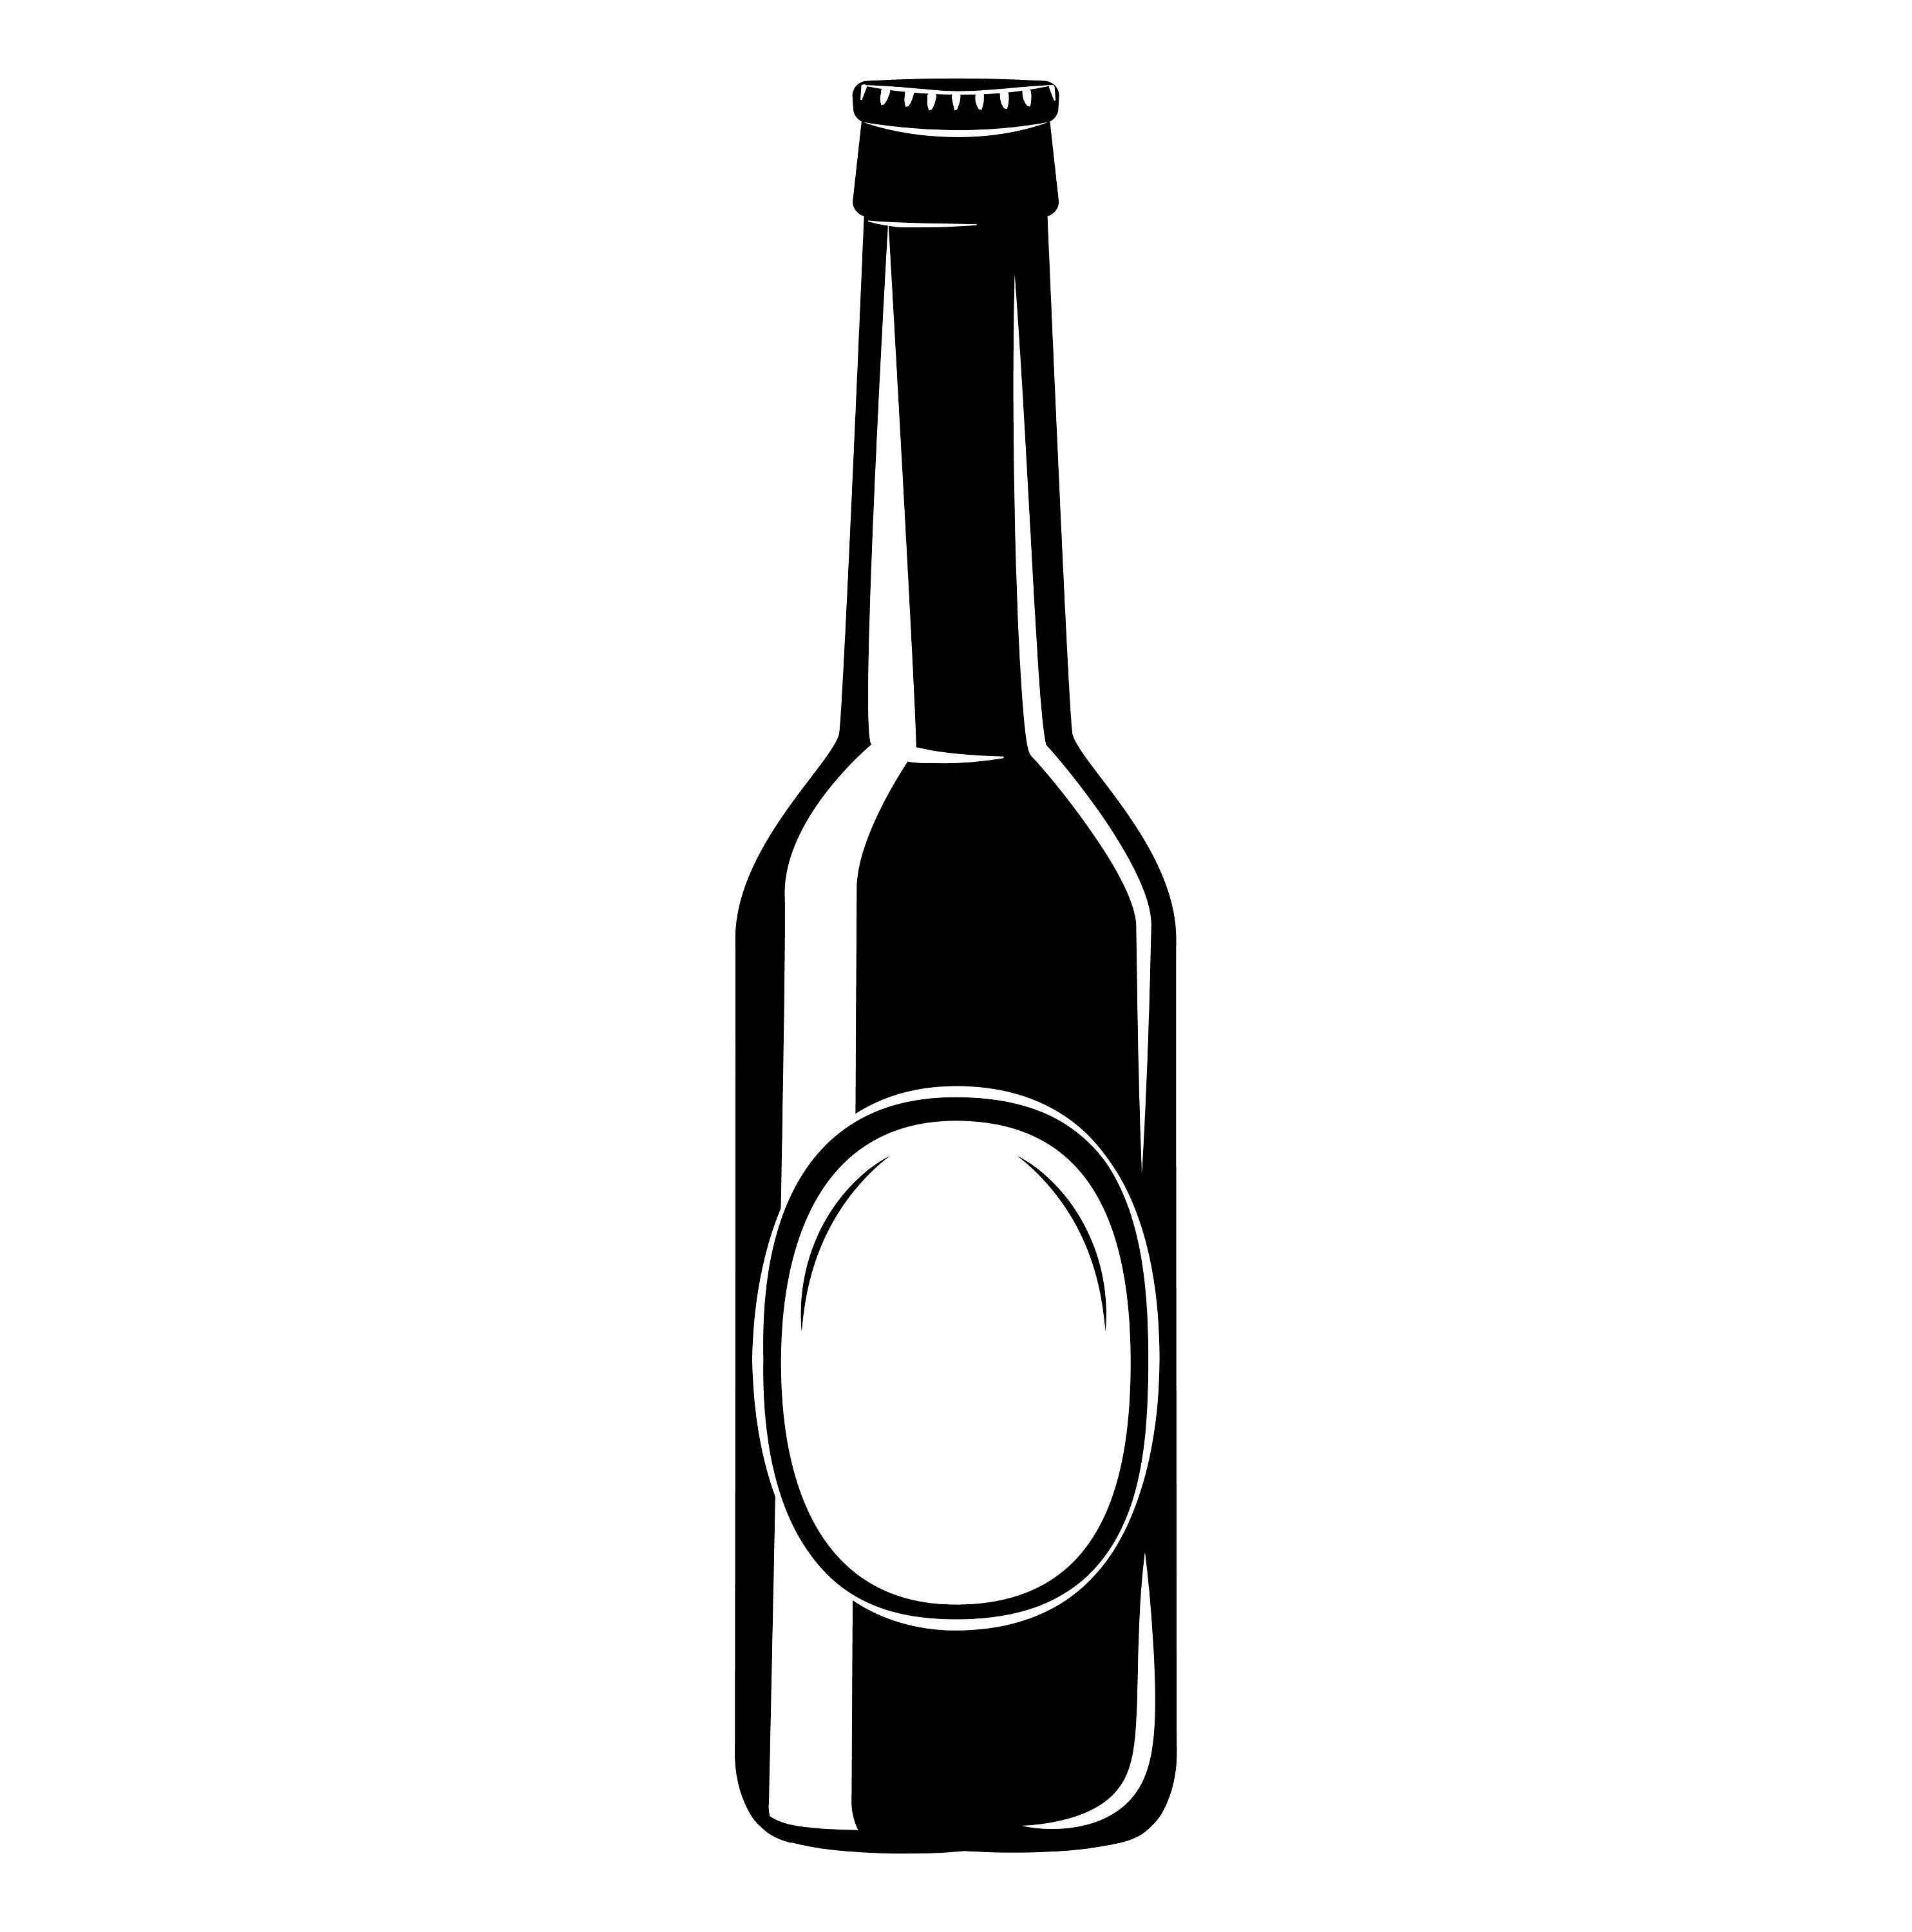 Beer Bottle Icon Svg Alcohol Drink Craft Beer Brewery